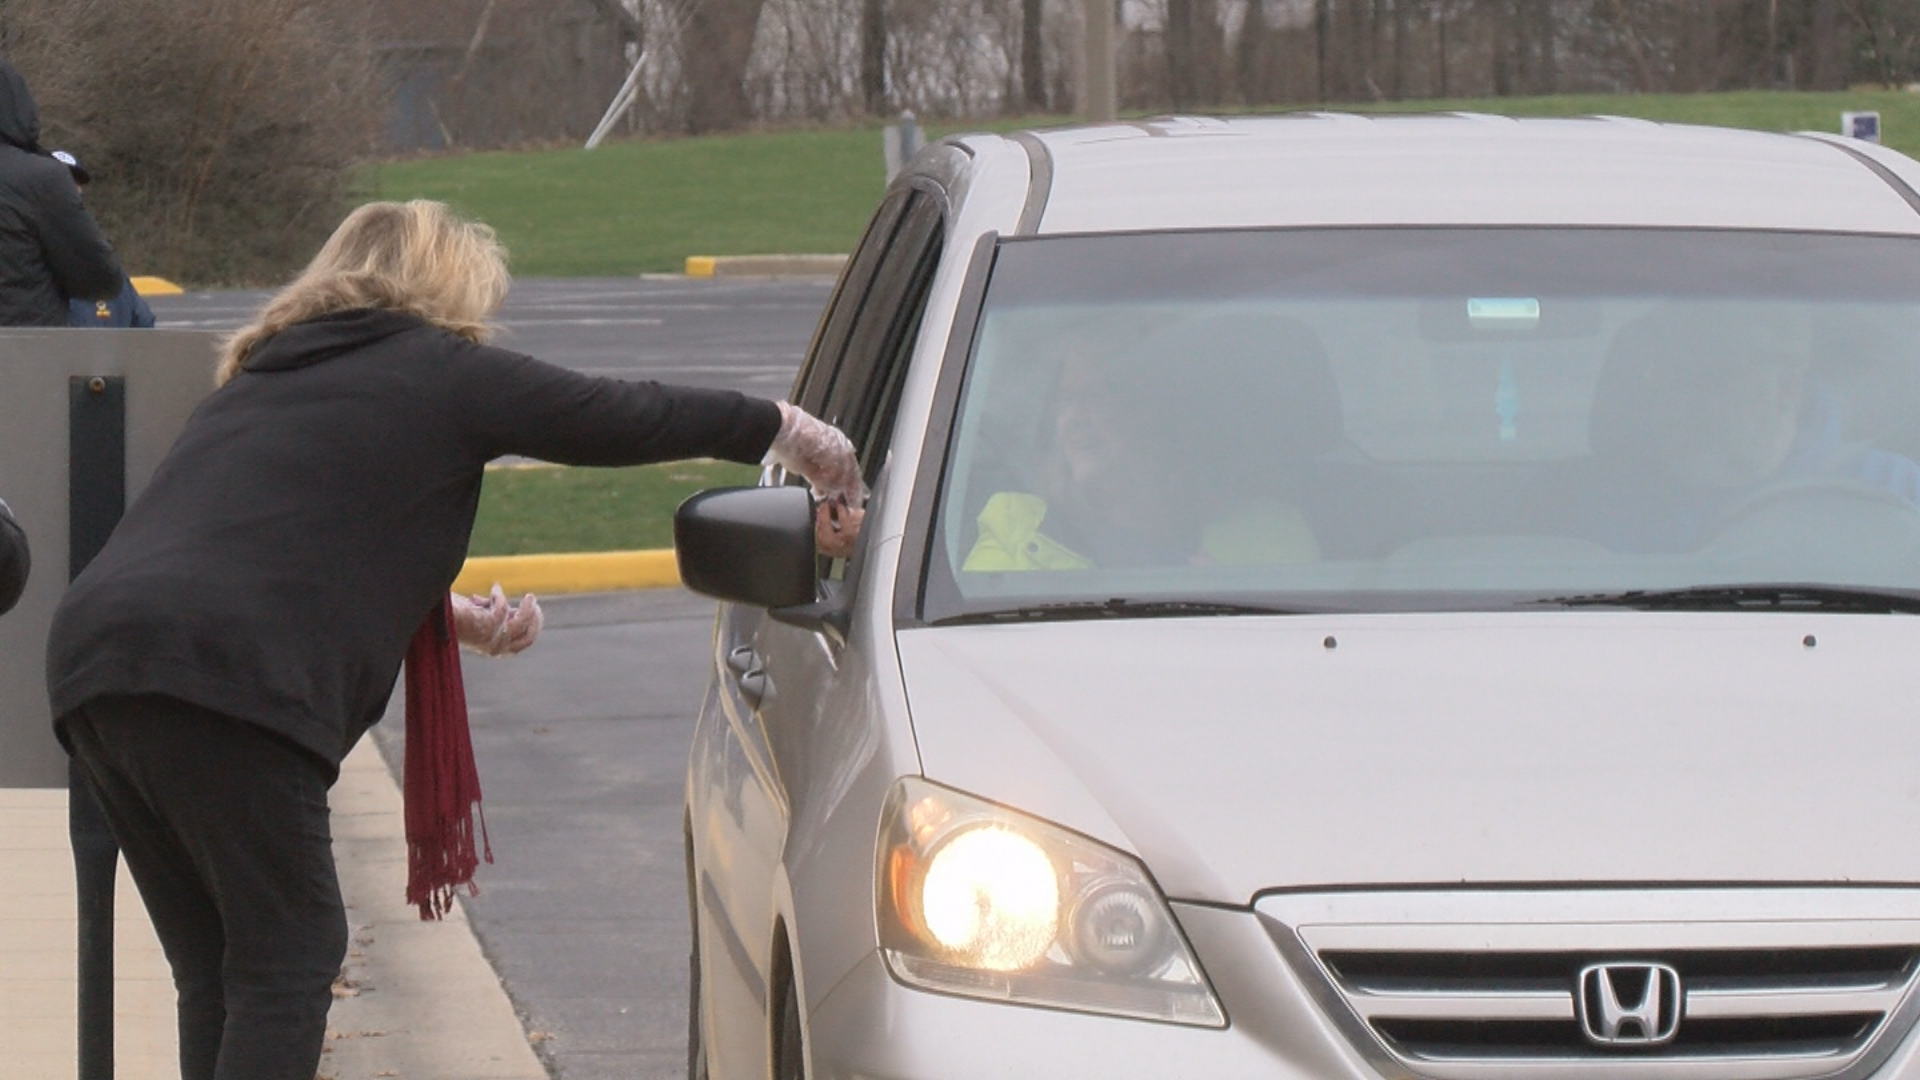 Indy Gas Prices >> Indy church hosts drive-thru communion amid coronavirus threat - WISH-TV | Indianapolis News ...